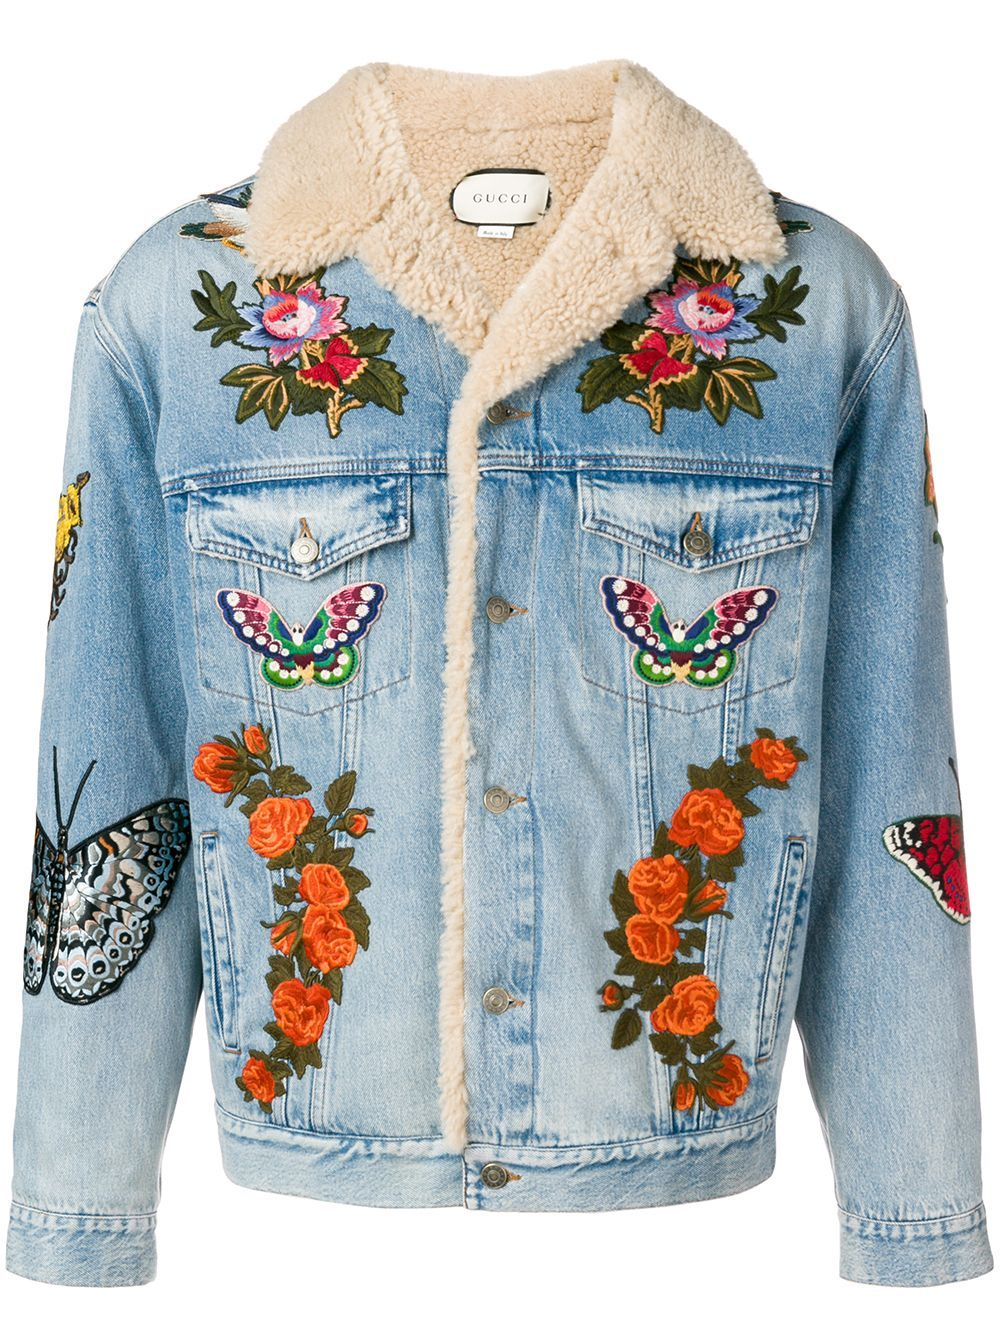 Gucci Embroidered Denim Jacket With Shearling Farfetch Embroidered Denim Jacket Vintage Embroidered Denim Embroidered Denim Jacket [ 1334 x 1000 Pixel ]